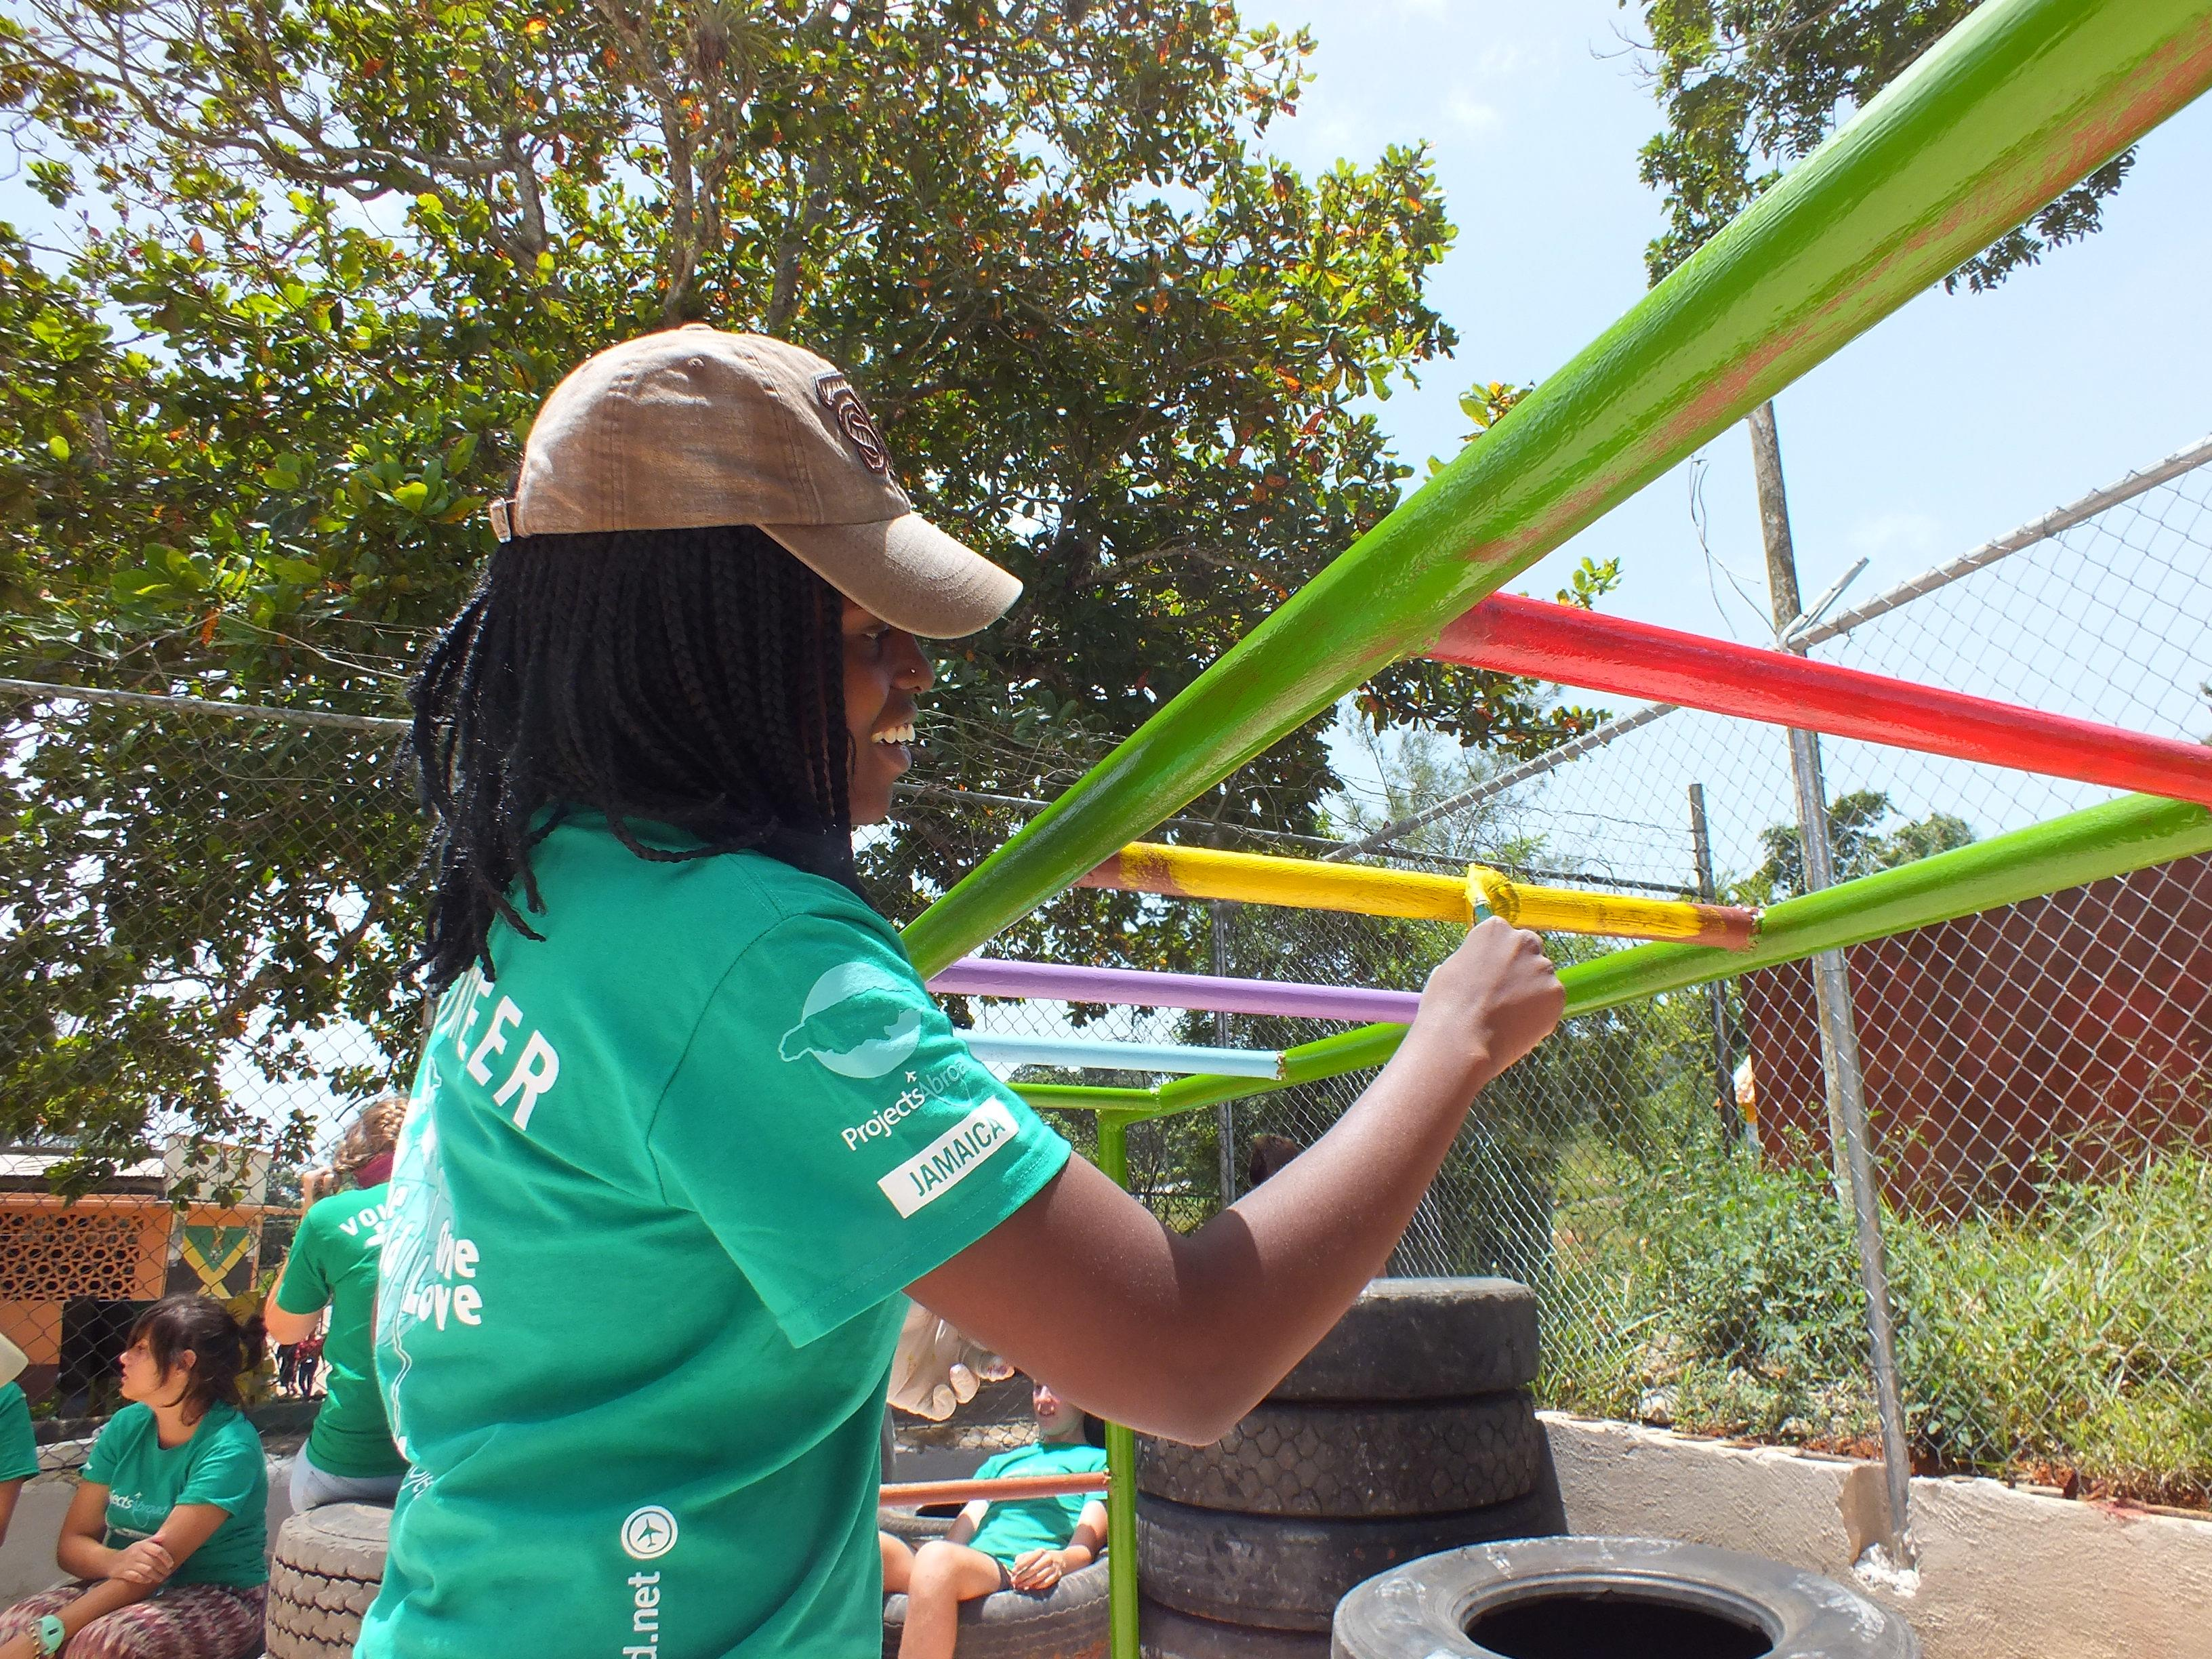 A female Projects Abroad volunteer helps refurbish playground equipment in Jamaica as part of her summer volunteer abroad program.